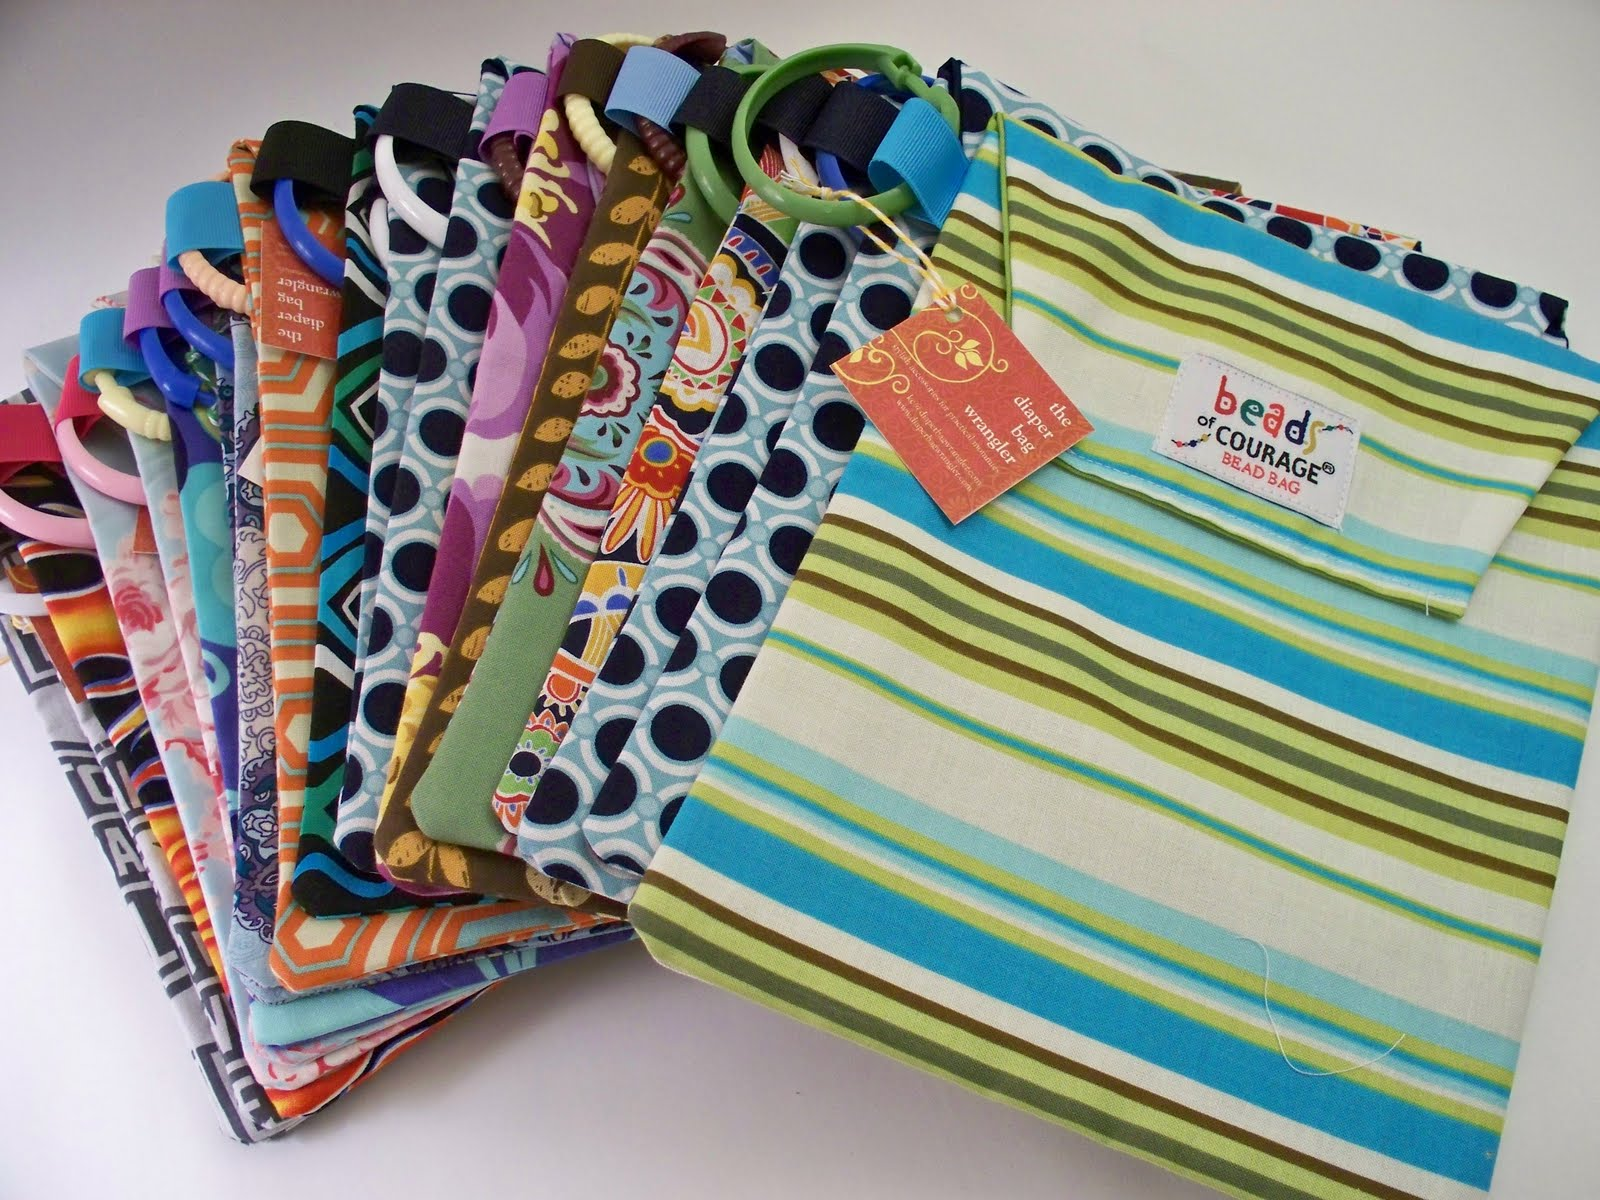 The Diaper Bag Wrangler: Paying It Forward - Bags for Beads Of Courage